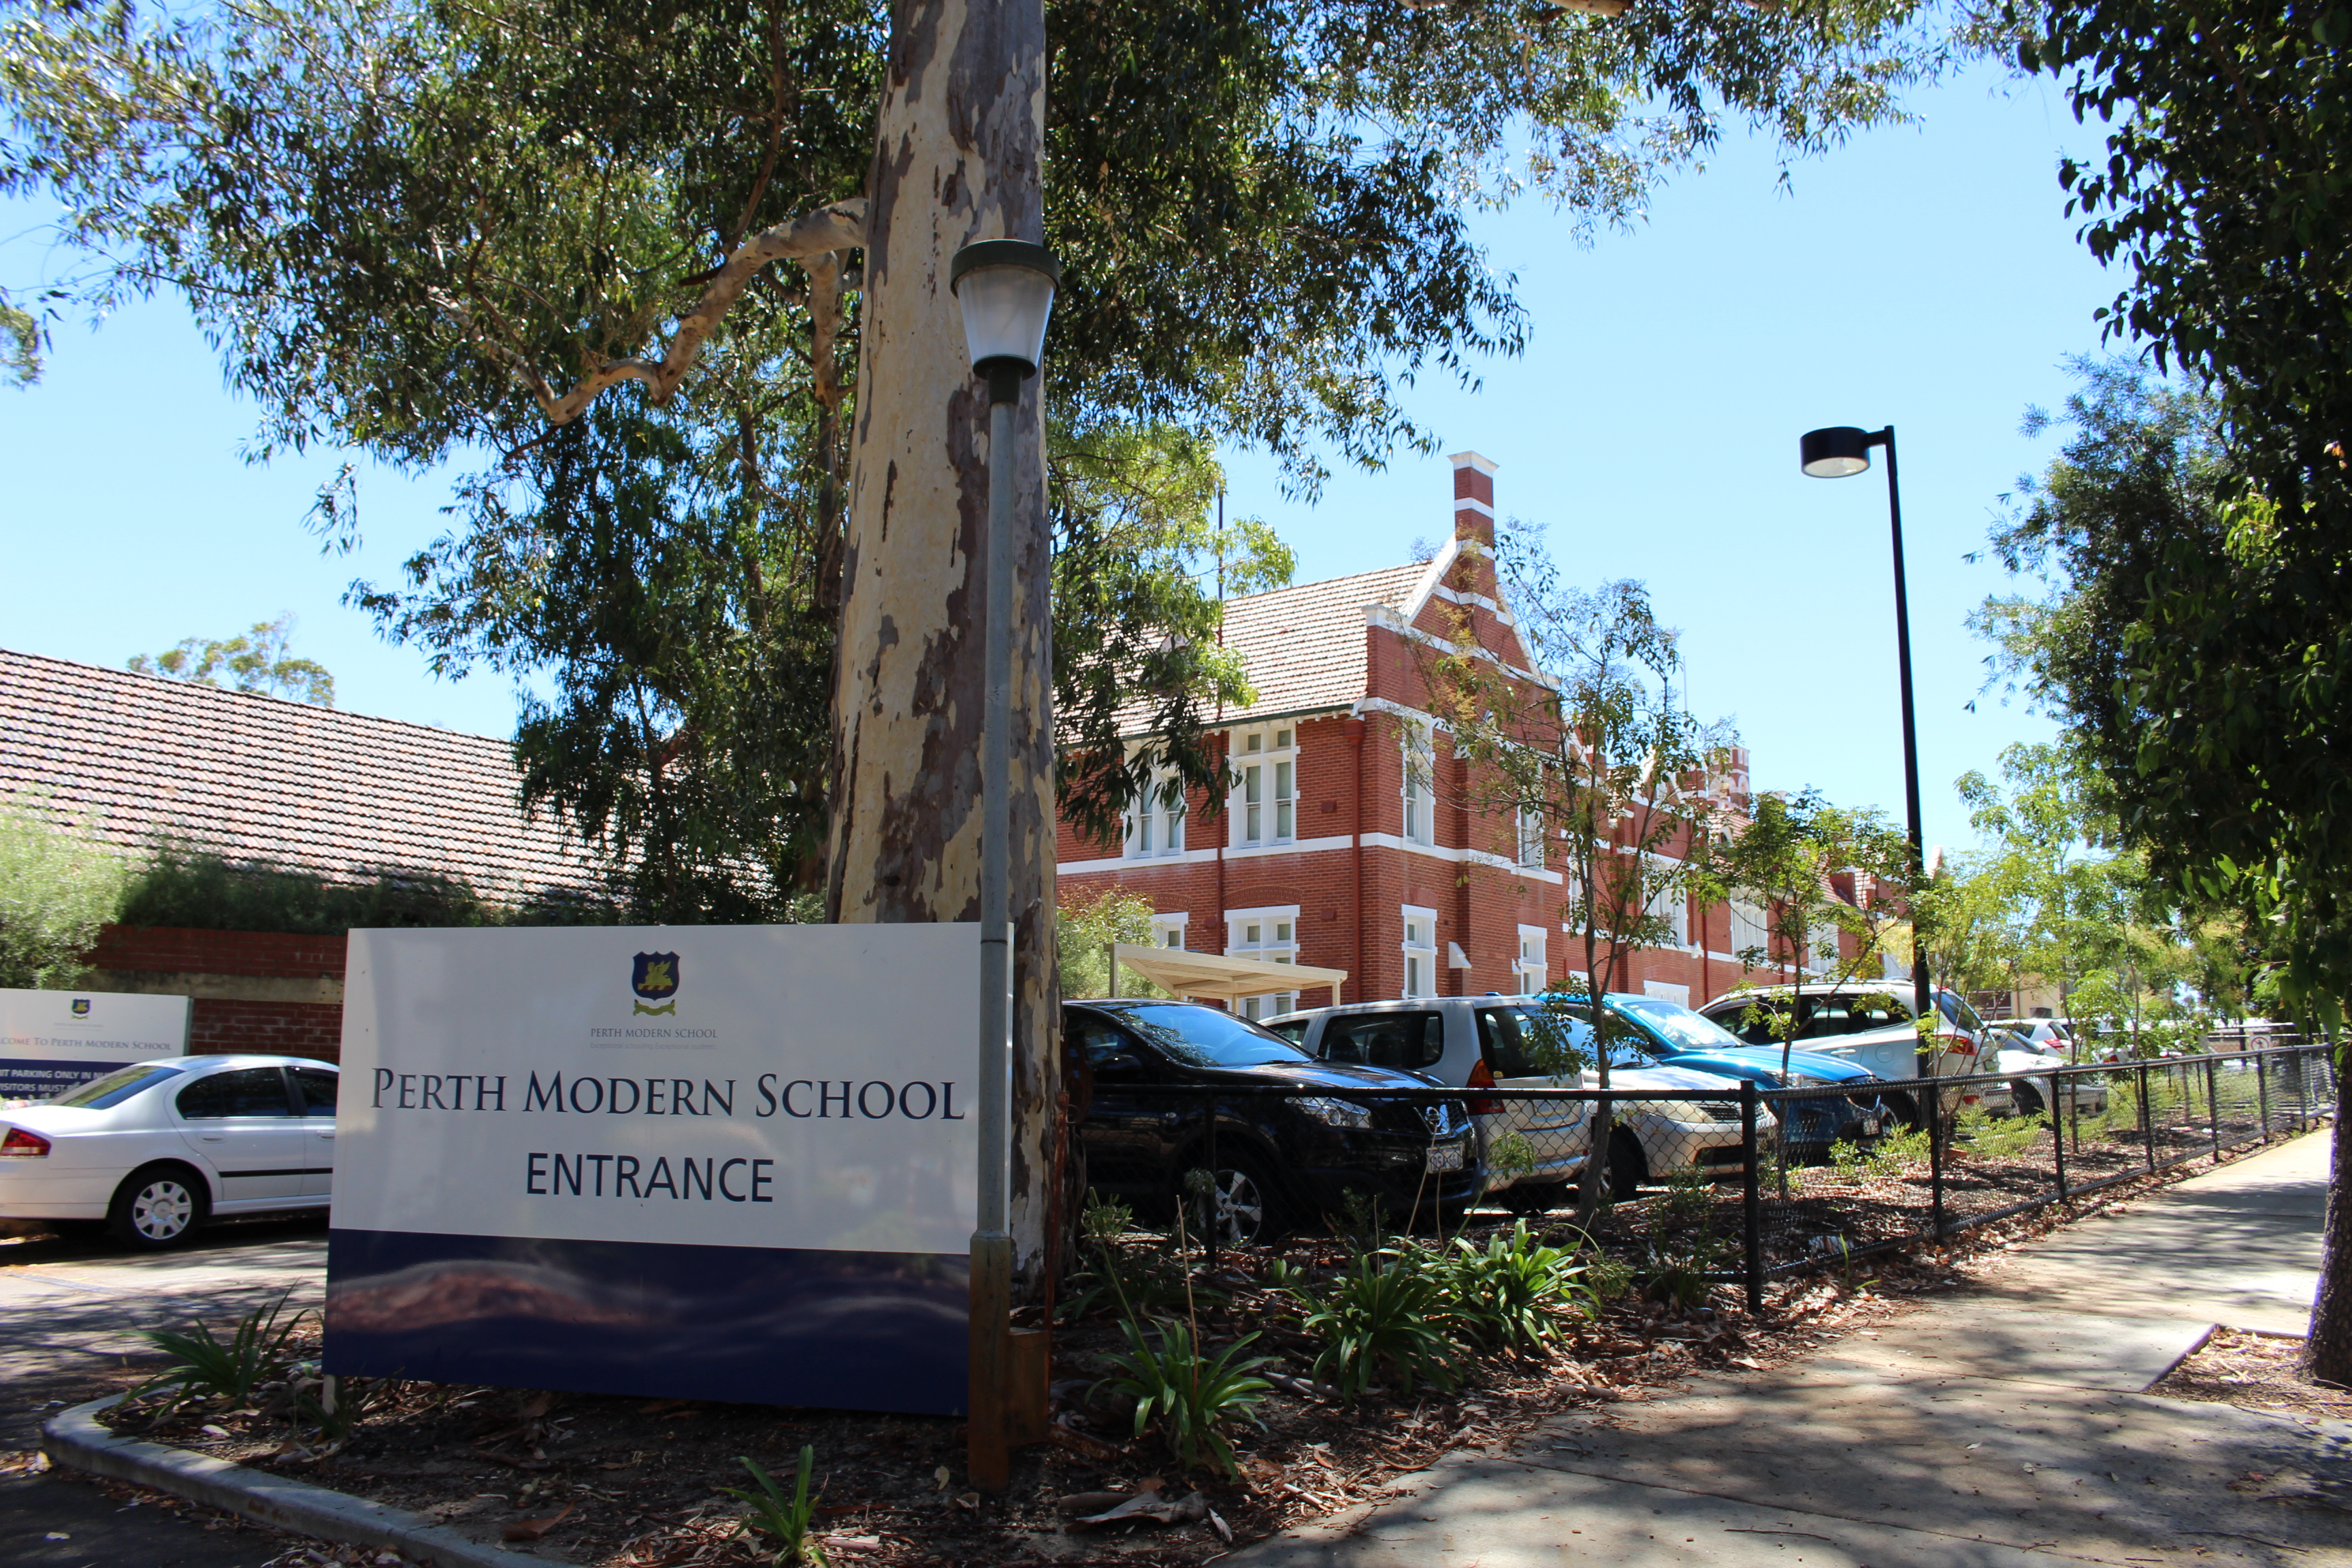 Perth Modernian Society president says second selective-student school needed